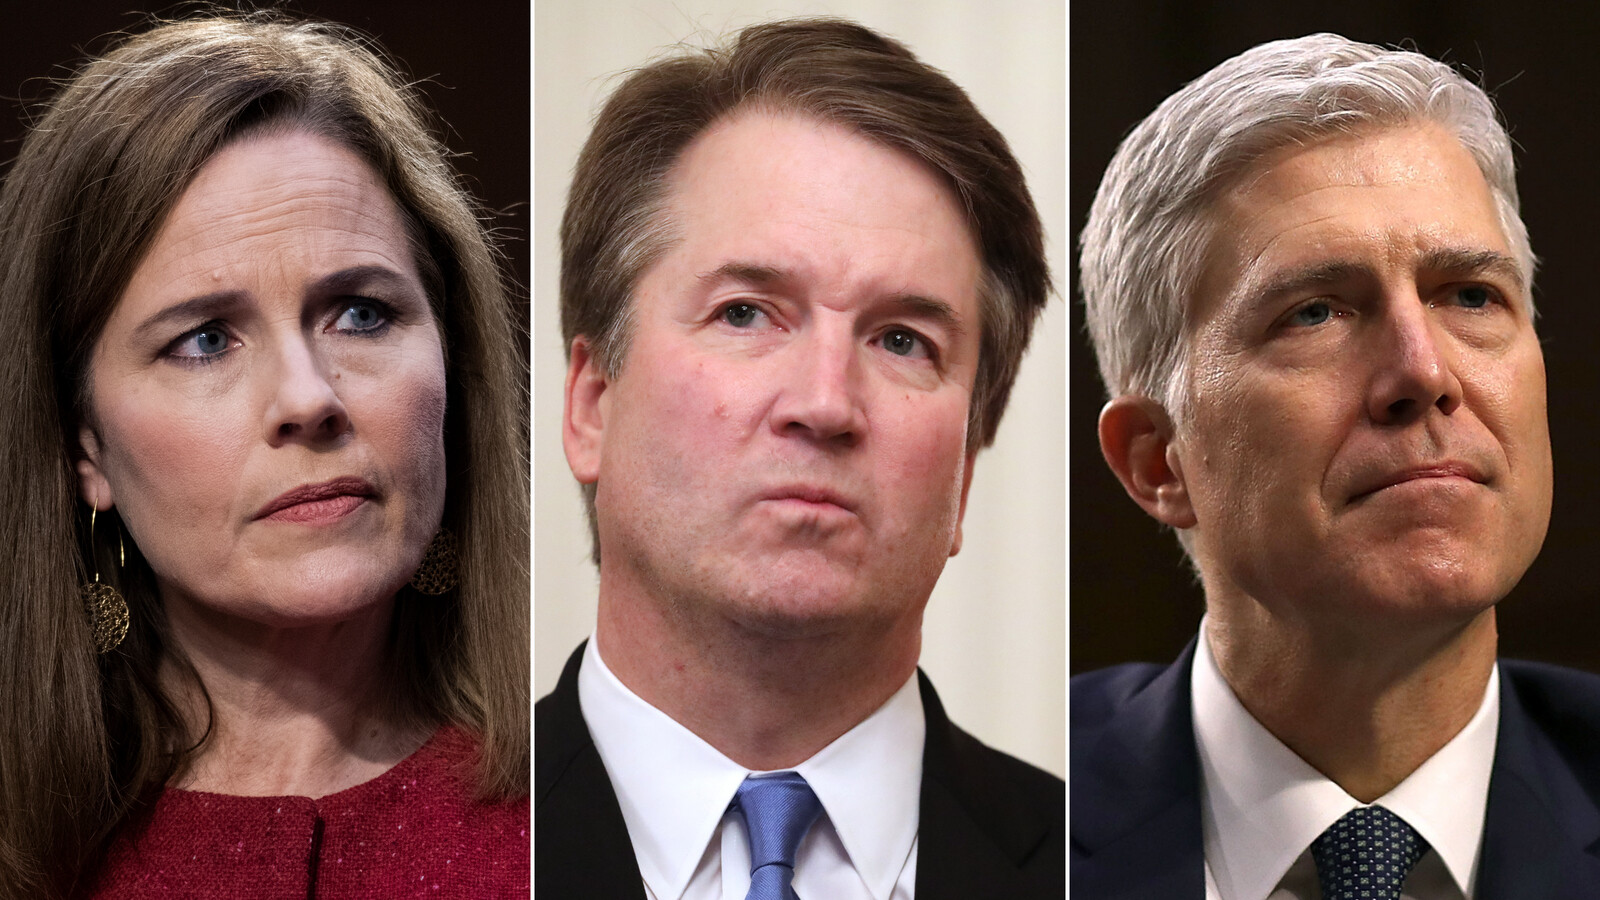 Trump's appointees are turning the Supreme Court to the right with different tactics